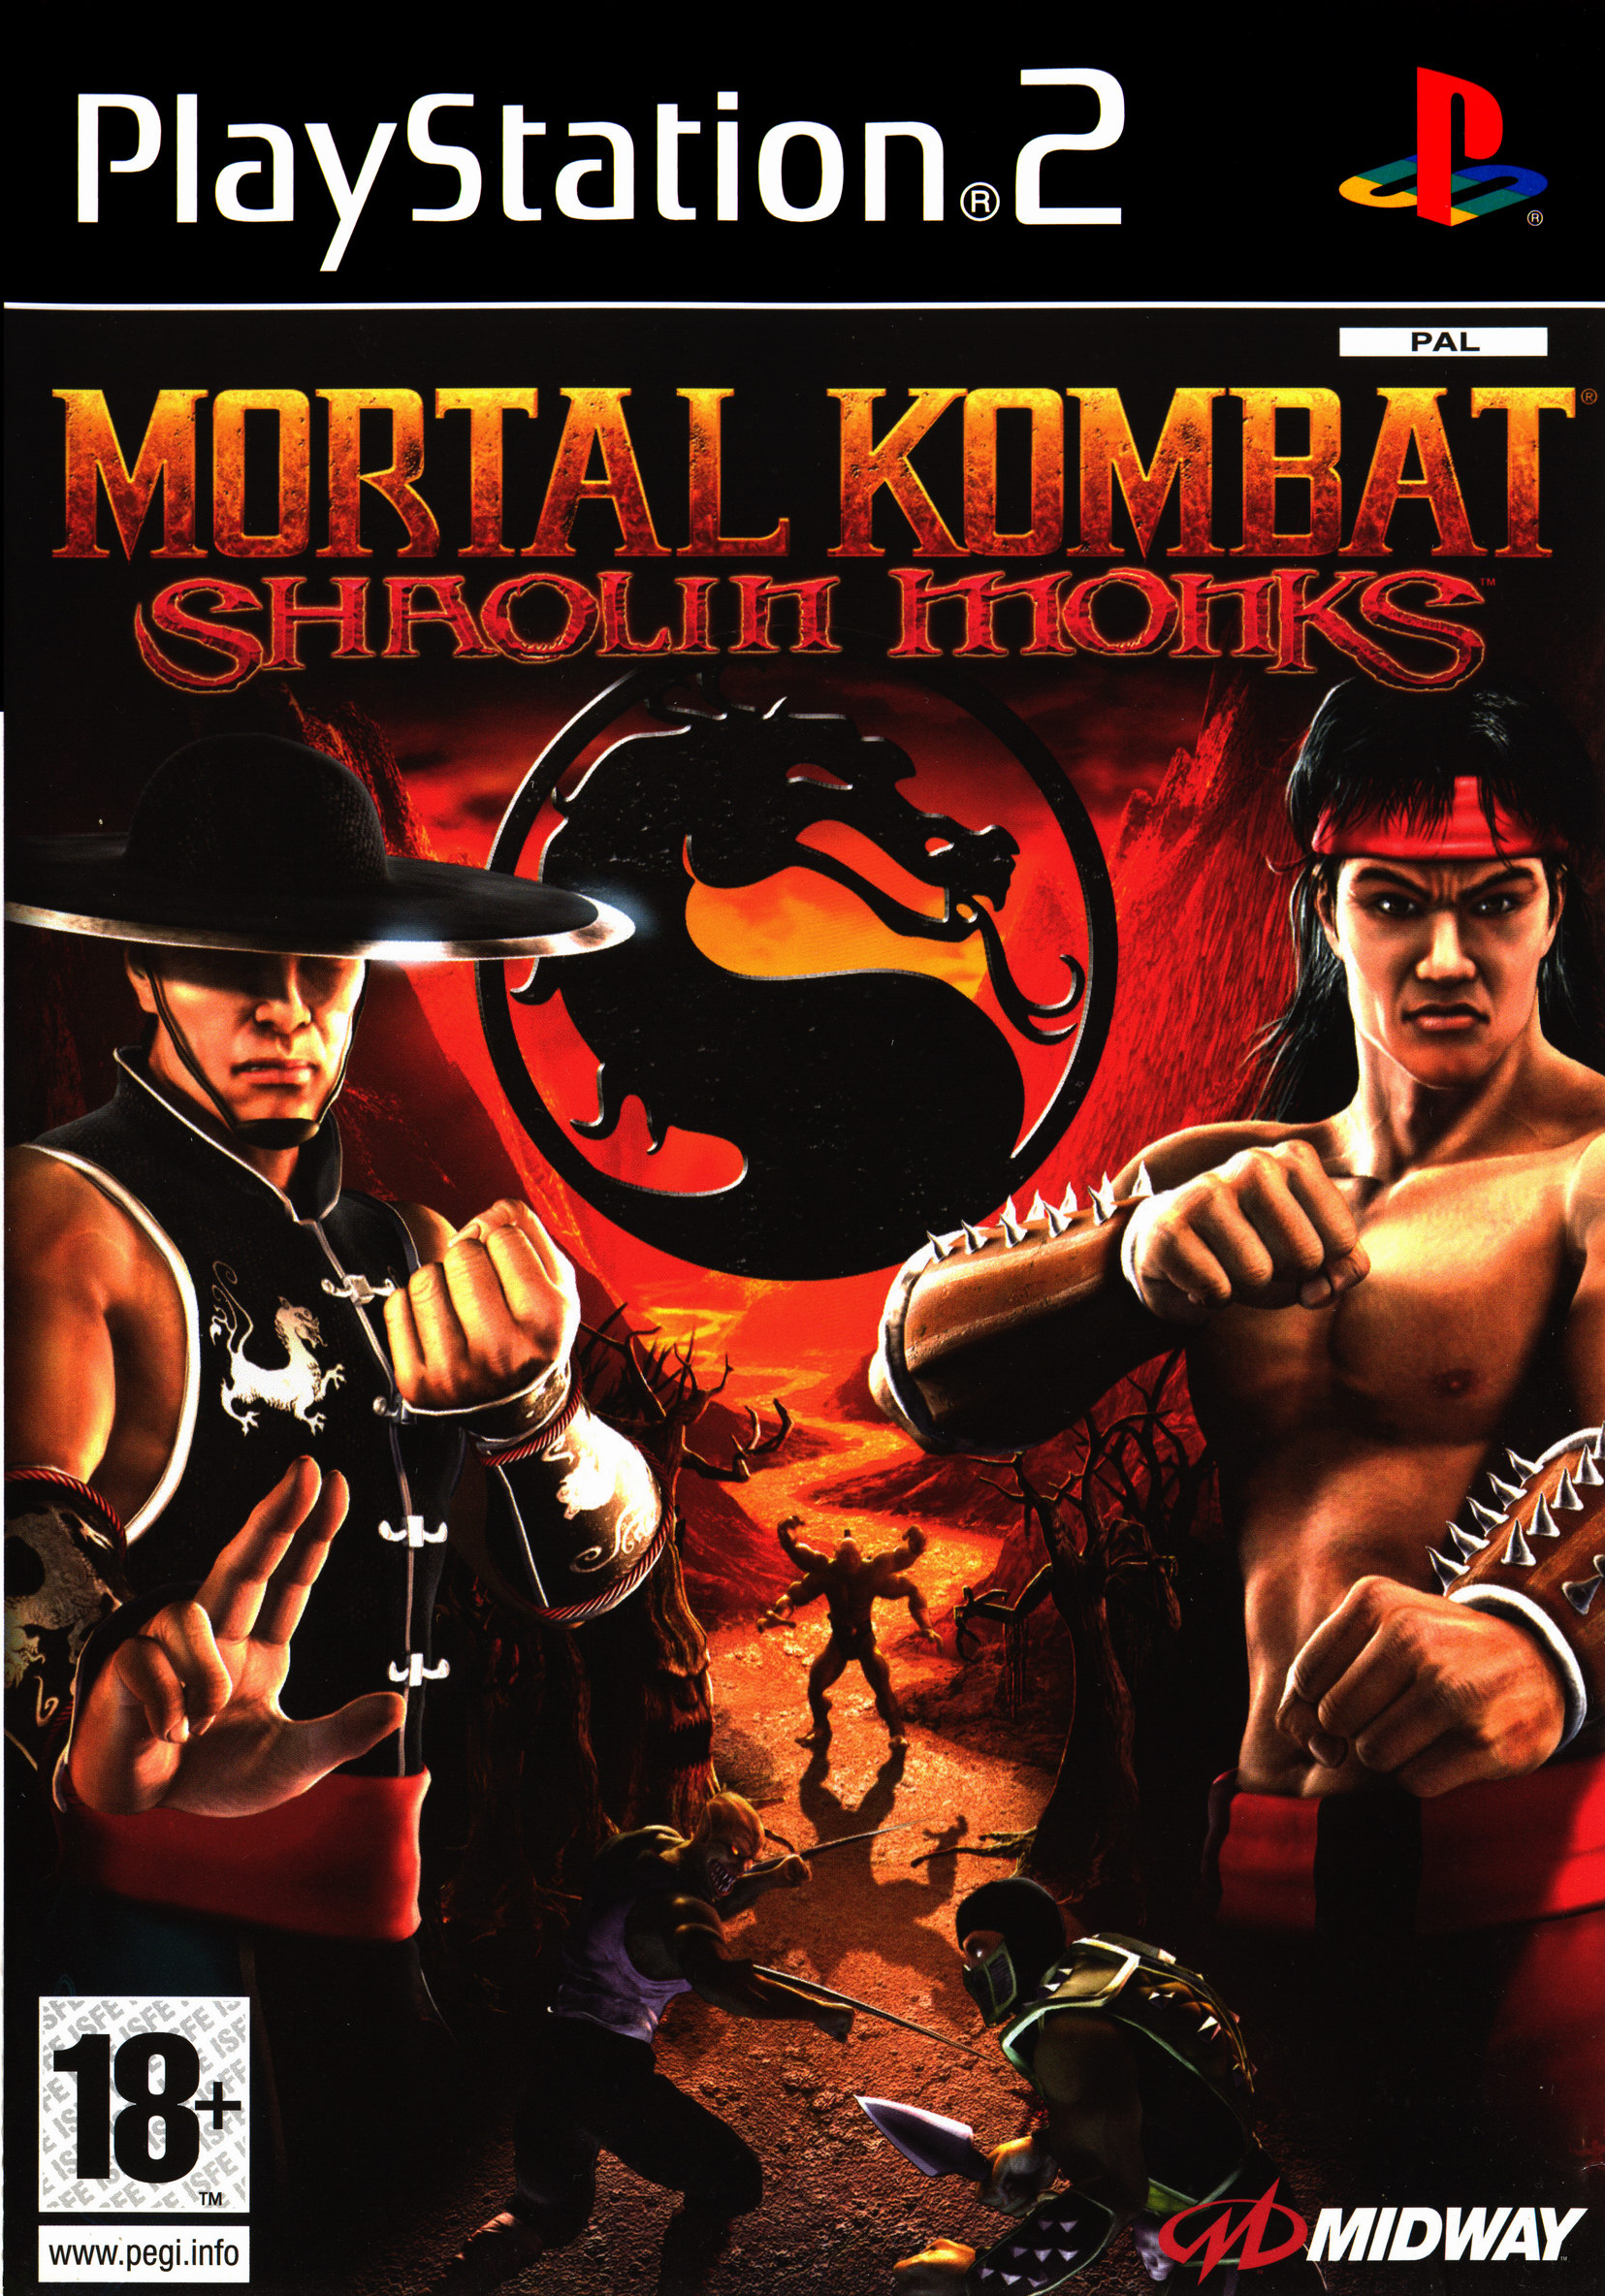 Mortal kombat shaolin monks characters - photo#15